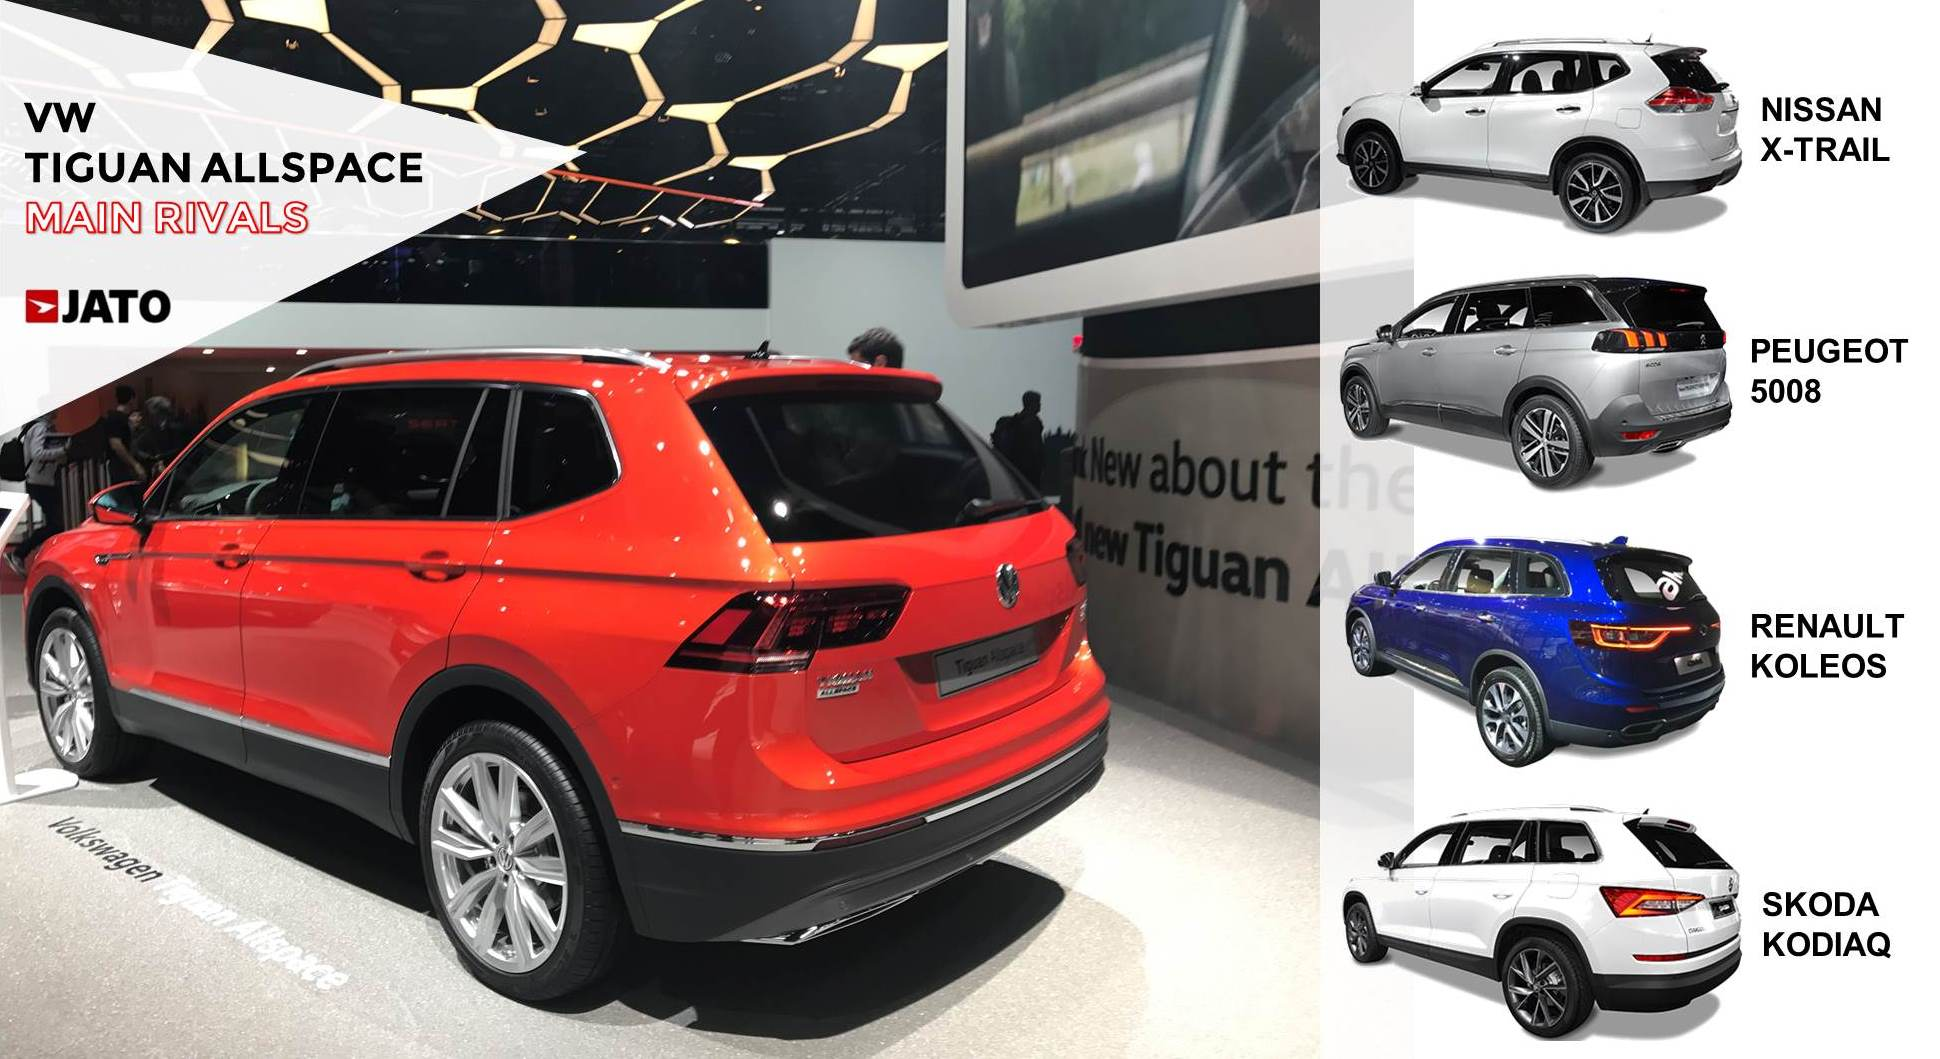 Volkswagen brand wants also a piece of the increasing mainstream midsize SUV segment. Following the same formula used by Nissan and its Qashqai-X-Trail, and Peugeot with its 3008-5008, VW uses the same name of the Tiguan to enter the D-SUV segment adding two more seats. The mainstream D-SUV segment is expected to hit the 400k units by 2020, according to our forecast partner, LMC Auto.